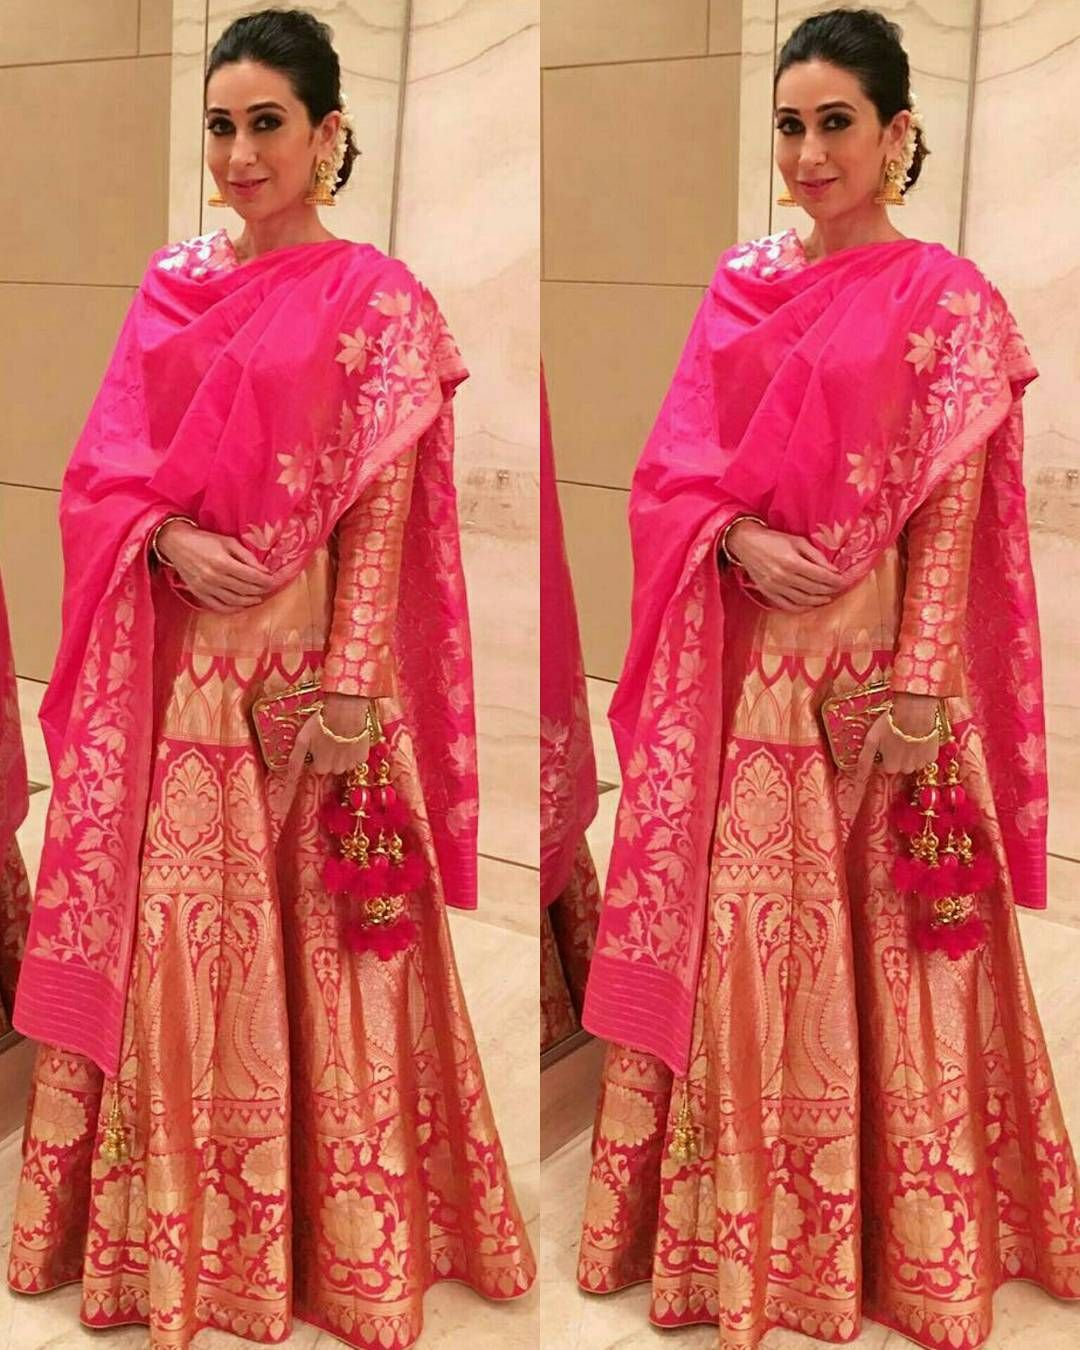 Rate her look  1....   Karishma Kapoor in Ethnic wear for an event in Chennai @Bollywood  . . #ethnicwear #indiandesigner #asiandesignerwear #indianfashionblogger #anarkali #anarkalis #punjabisuit #indianculture #asiandesignerwear #indianfashionblogger #kurti #punjabisuit #ethnicwear #salwarkameez #bollywoodstylefile #bollywood #stylefile #india #indian #indianfashion #indianstyle #bollywoodstyle #delhi #karishmakapoor #bridallehenga #kareenakapoorkhan  @BOLLYWOOD  . For more follow…